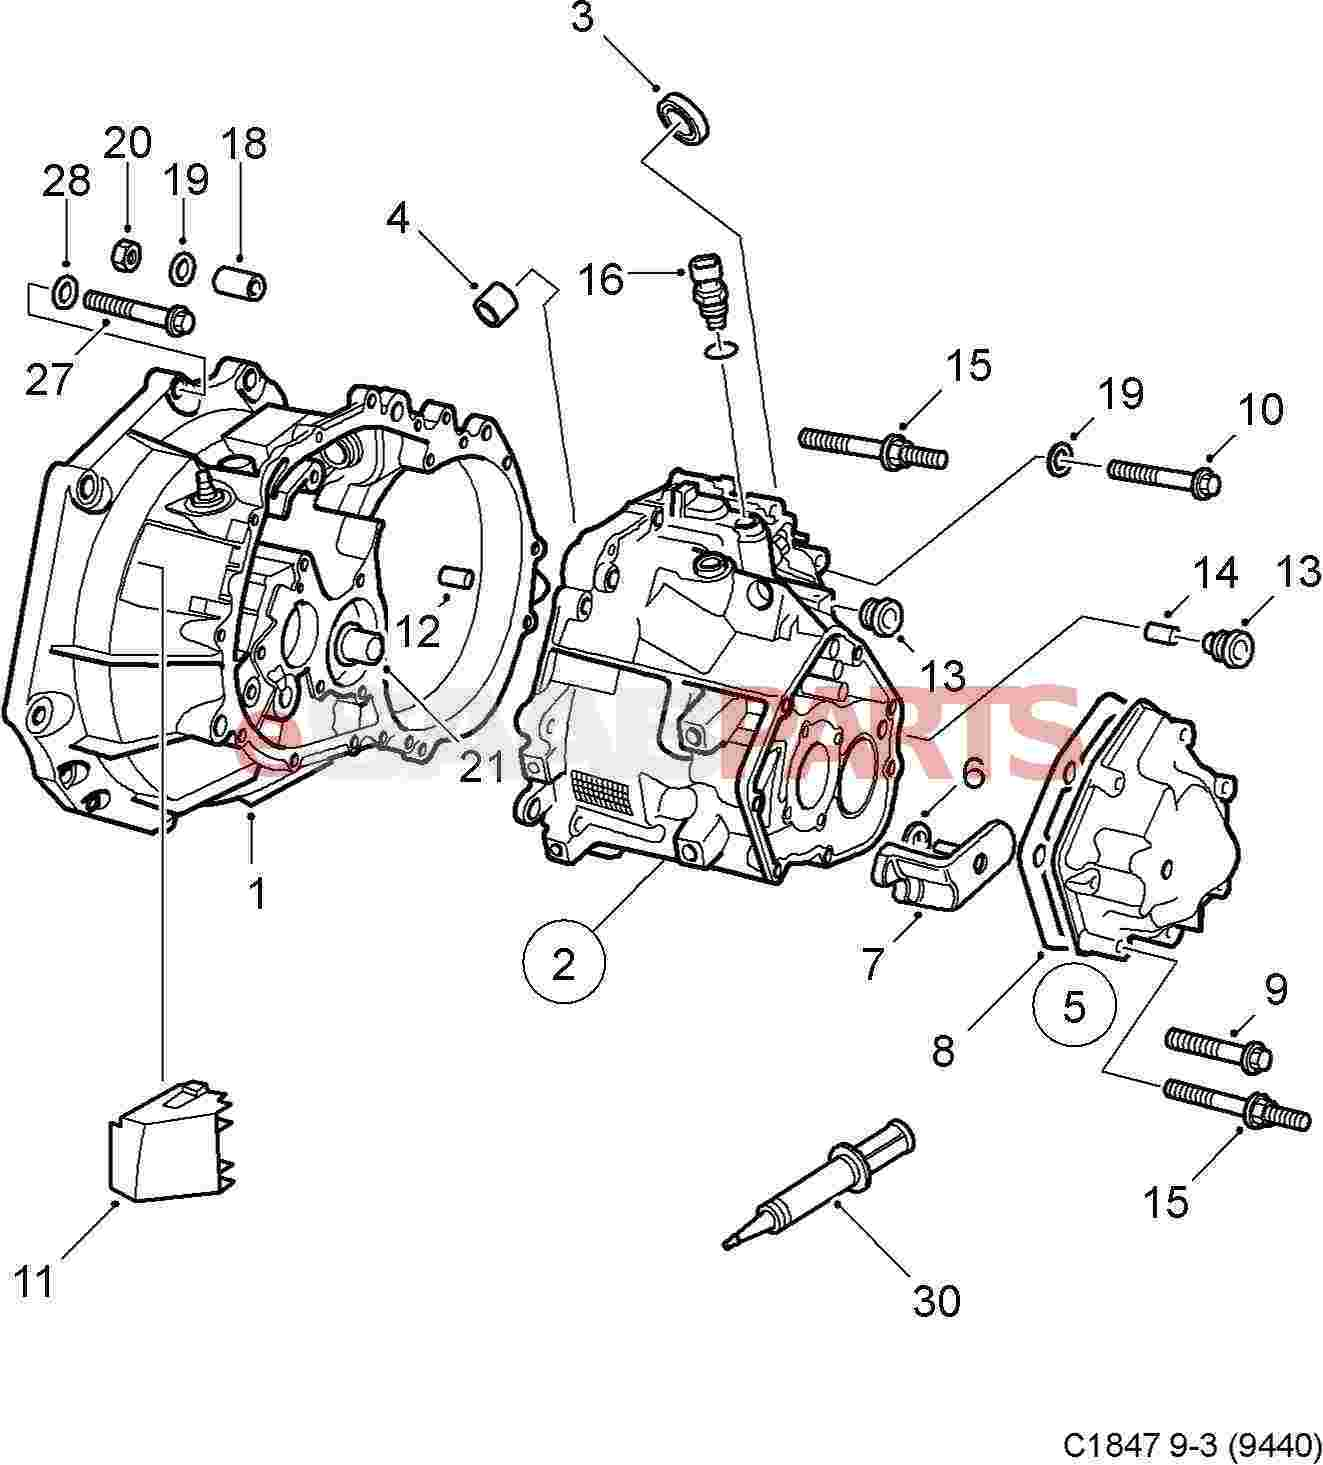 Transfer Case Diagrams on 95 Dodge Dakota Wiring Diagram